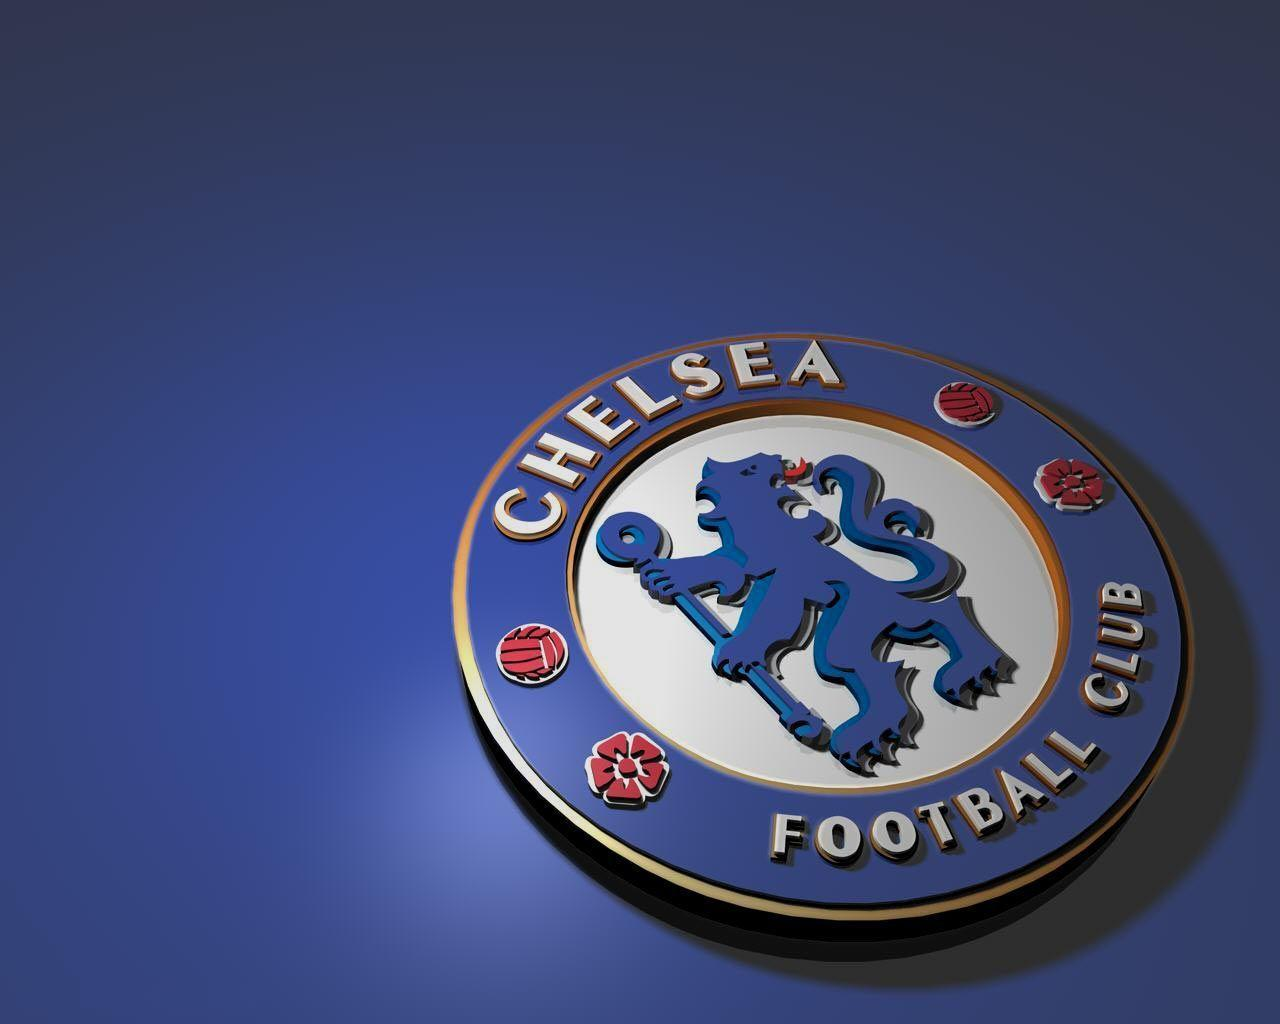 Chelsea FC 2013 Logo Football HD Wallpapers Pictures HD Wallpapers